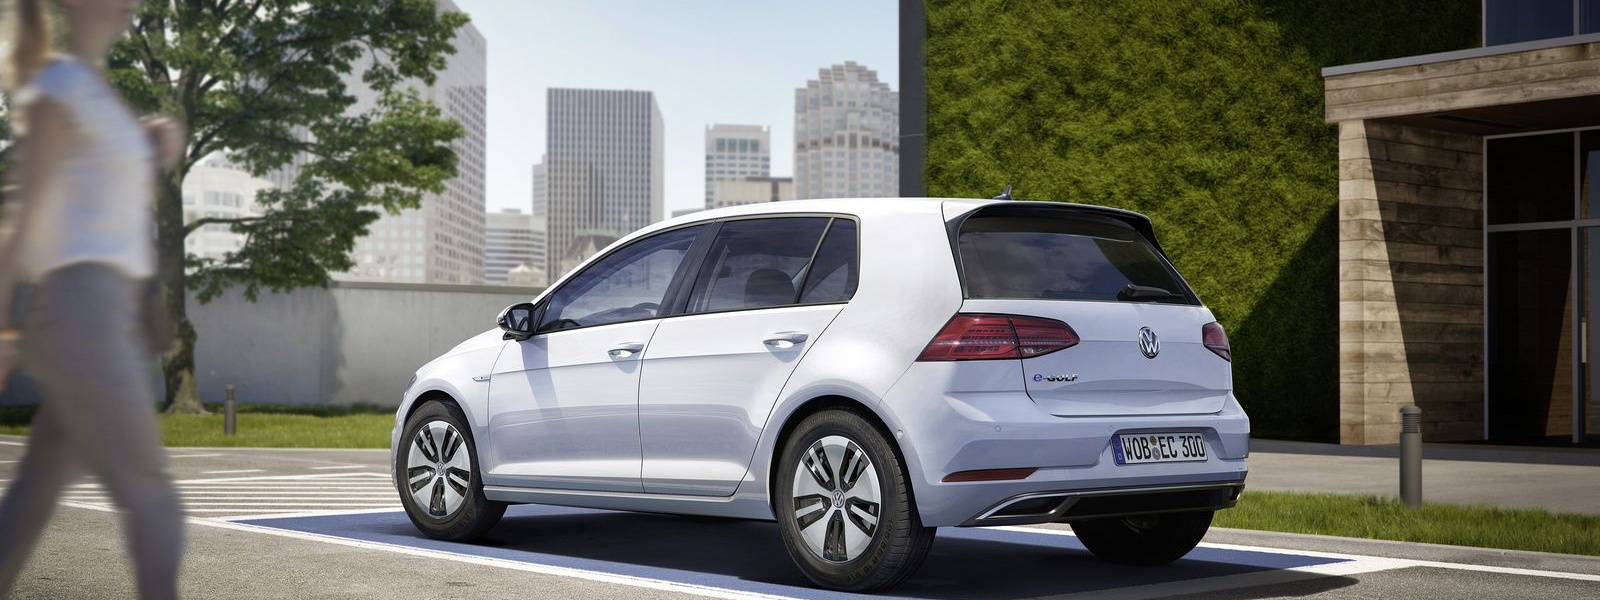 VW-e-Golf-Sold-Out-2.jpg